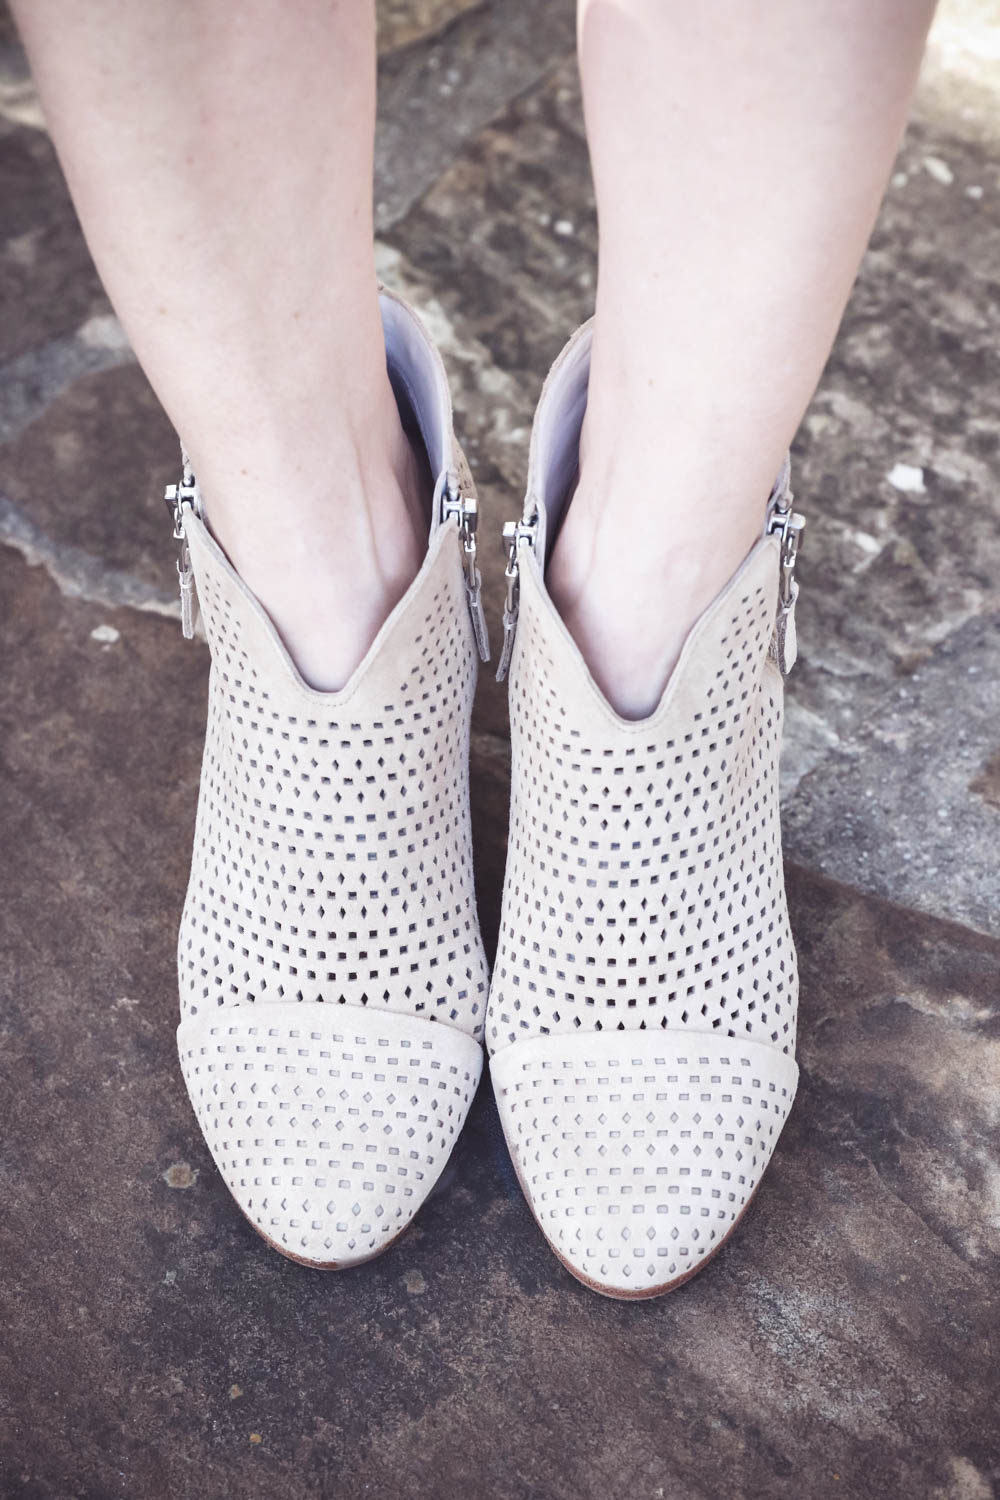 spring wardrobe basics, spring booties by Rag and bone from nordstrom in beige with perforations worn by Erin Busbee of busbeestyle from san antonio texas, fashion blogger and youtuber